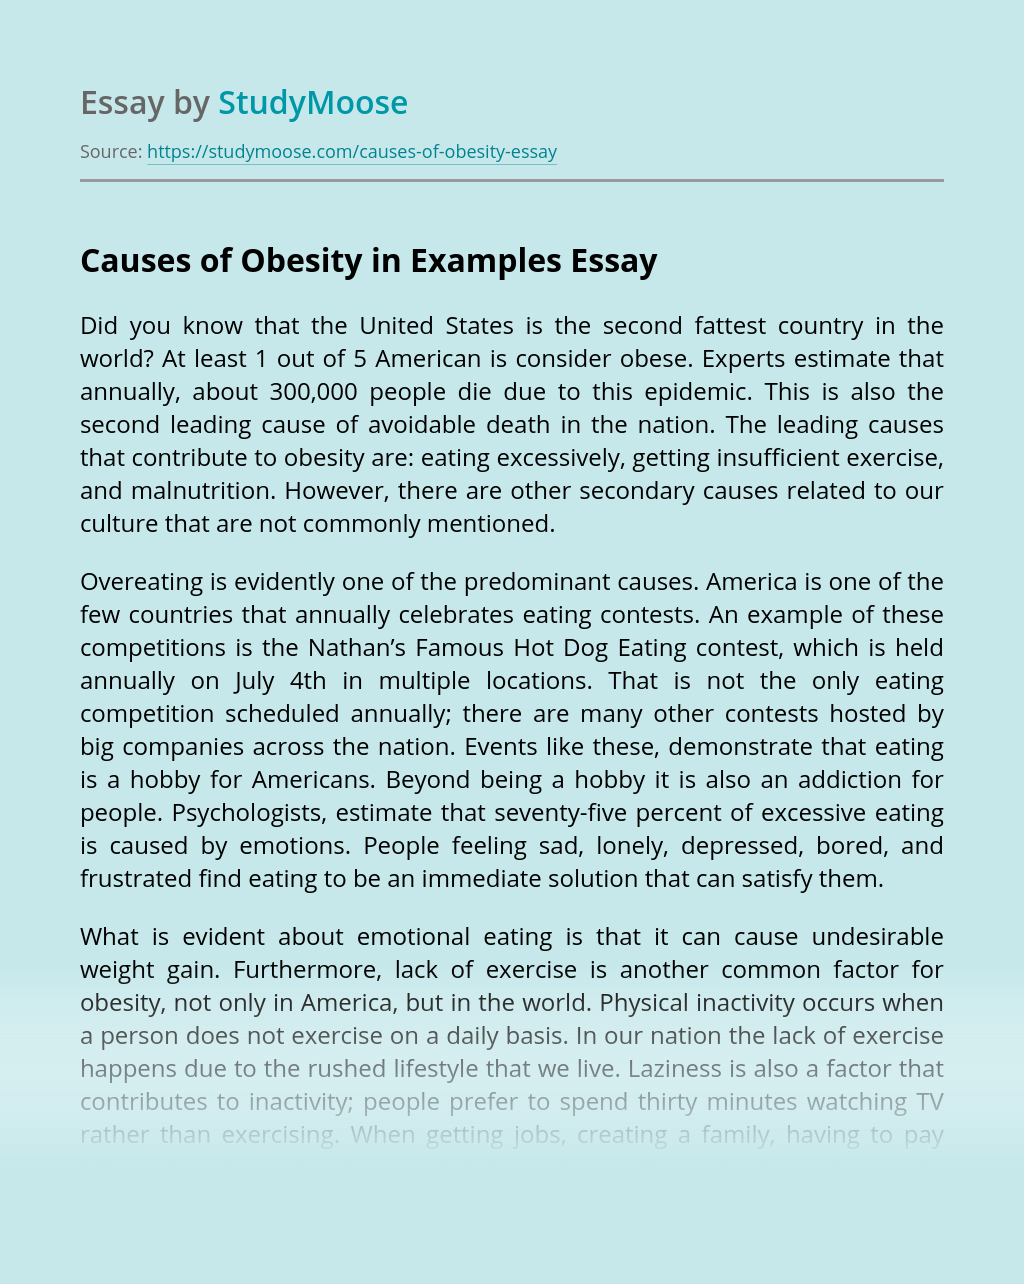 Causes of Obesity in Examples